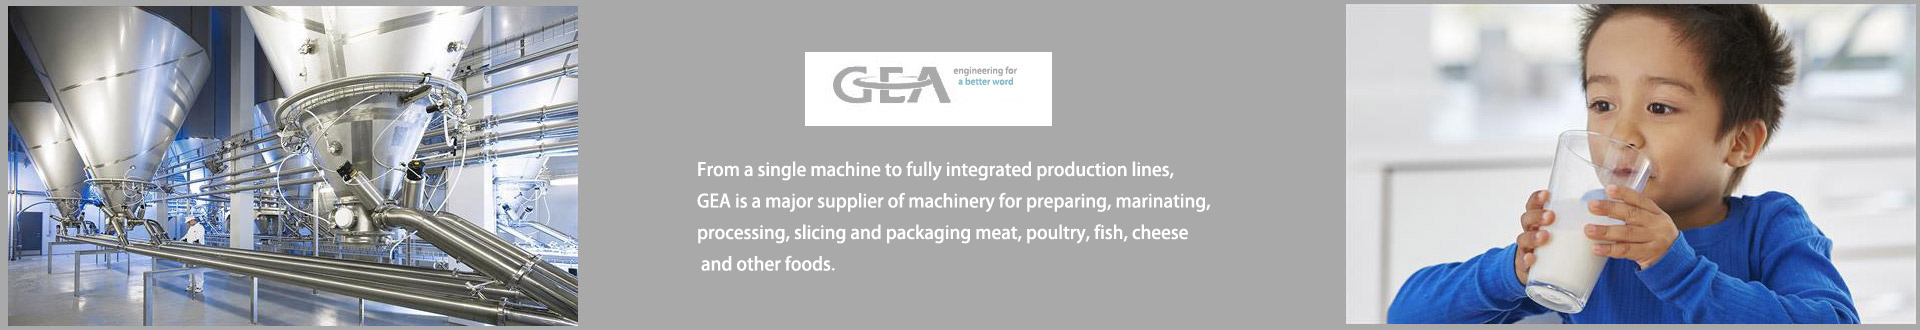 Potash Conditioning System-GEA Group Aktiengesellschaft